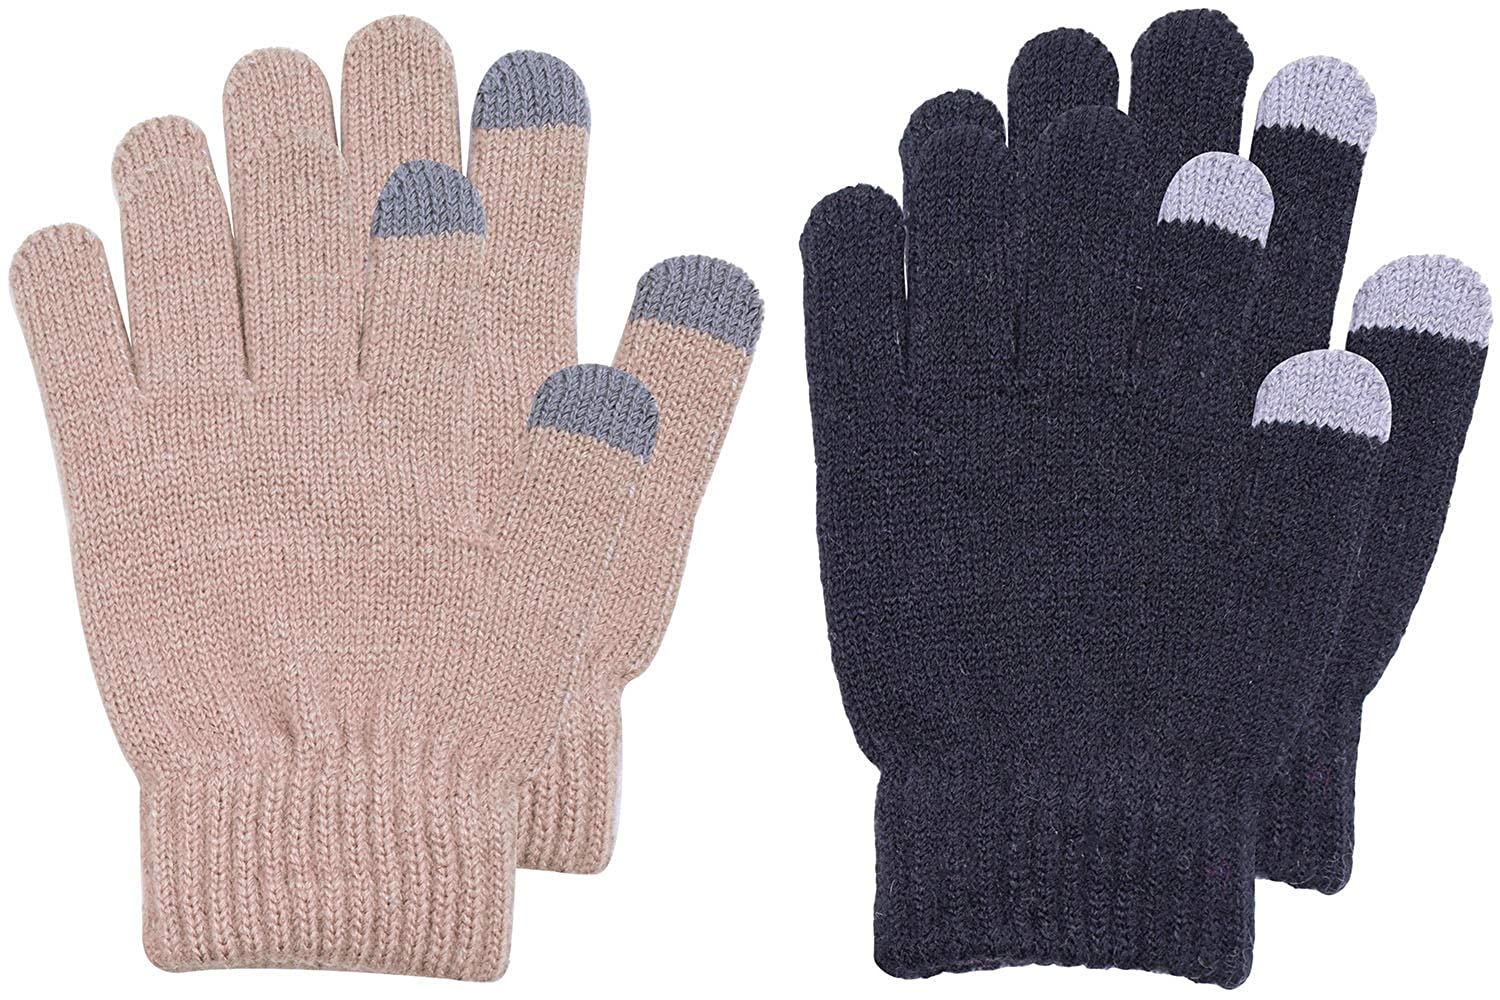 BODY STRENTH Kids Magic Gloves Winter Warm Touch Screen Cashmere KIDSTSGLOvES003